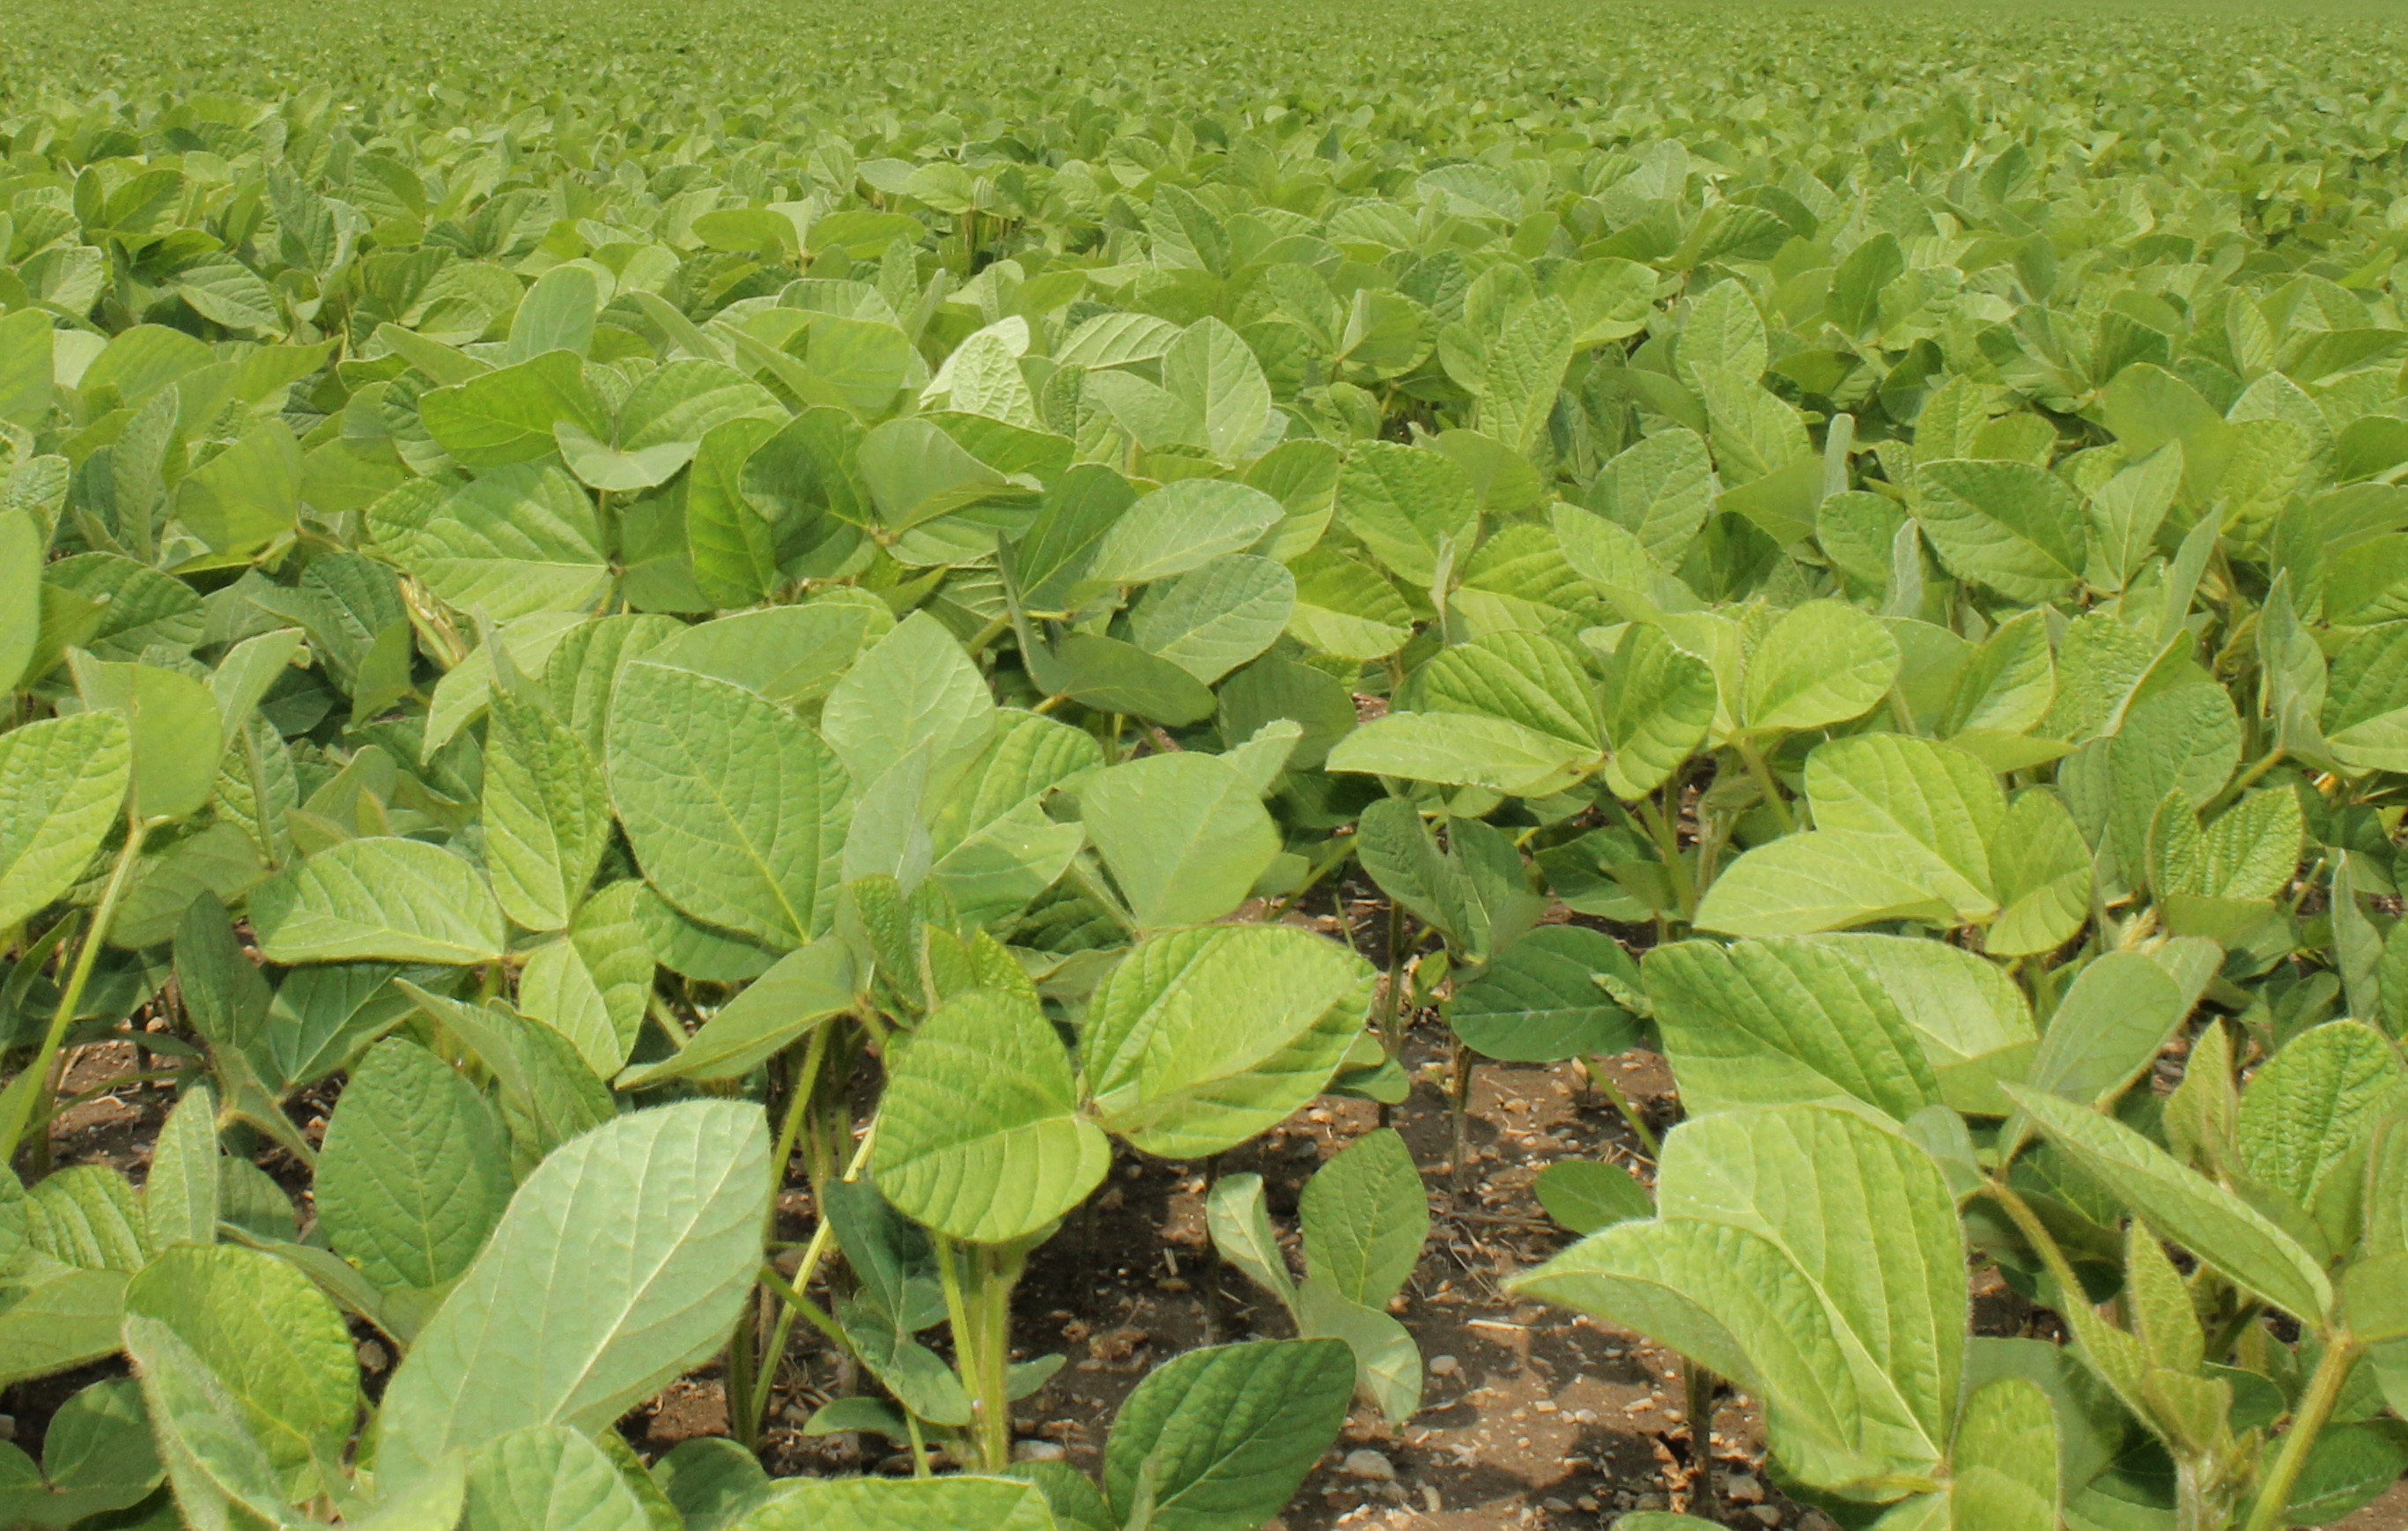 Soybeans - Early July